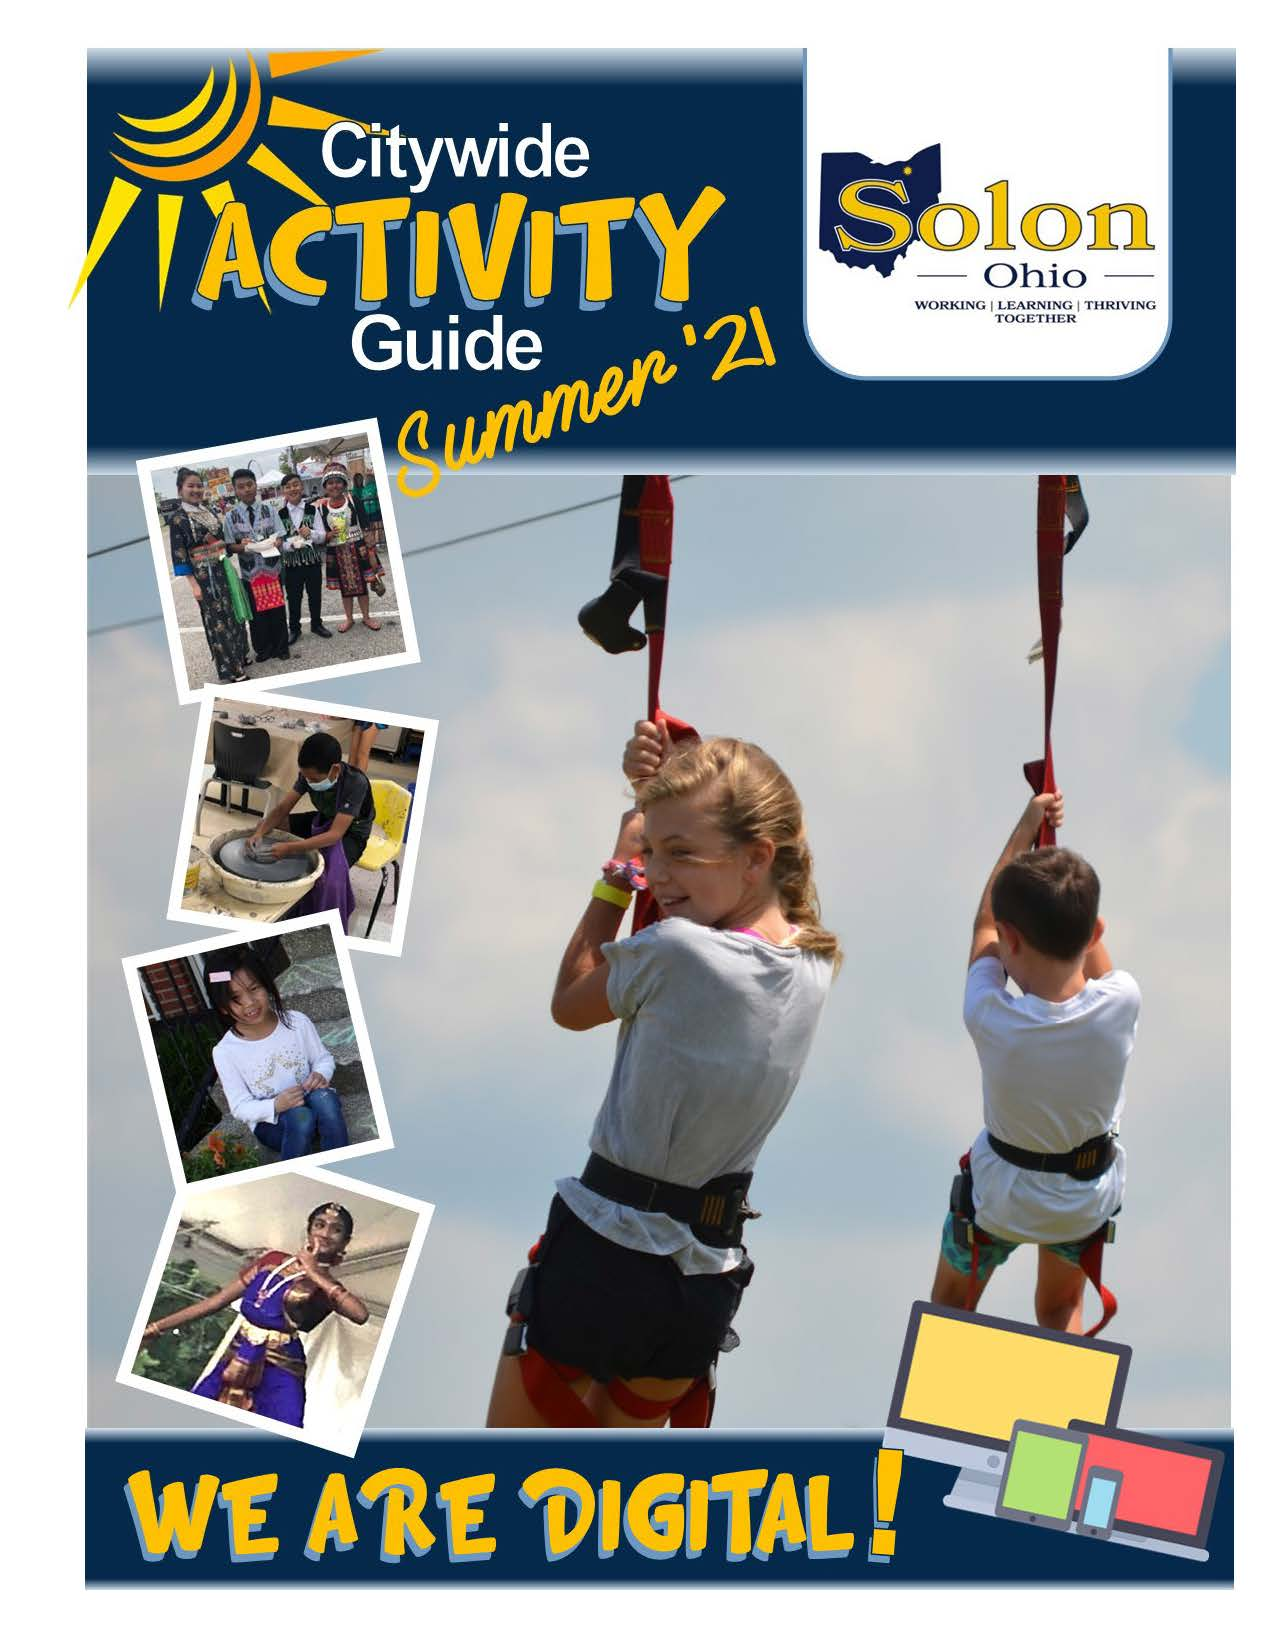 Solon Citywide Activity Guide - Summer 2021